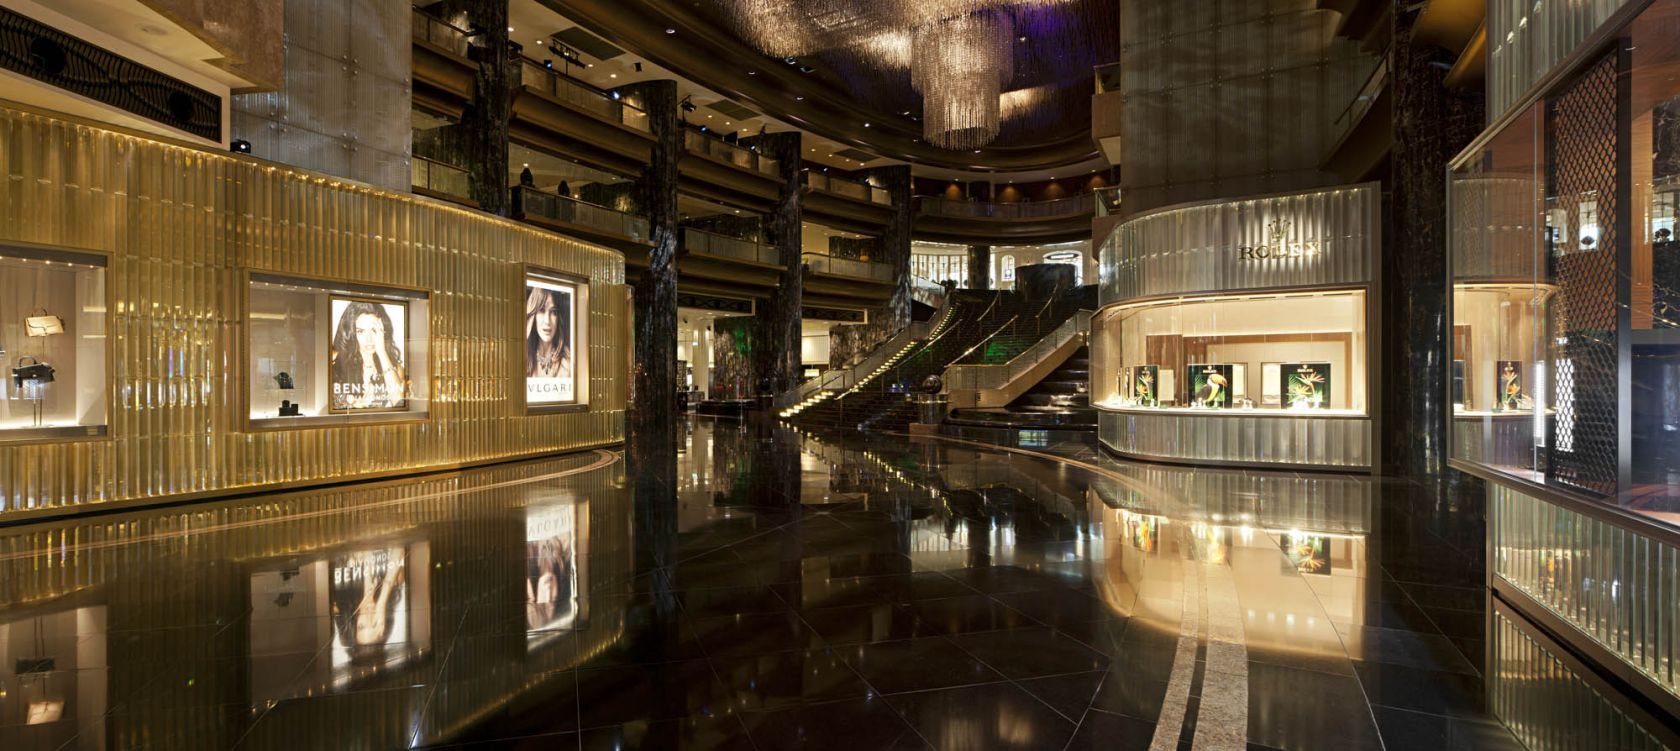 crown casino melbourne atrium entrance